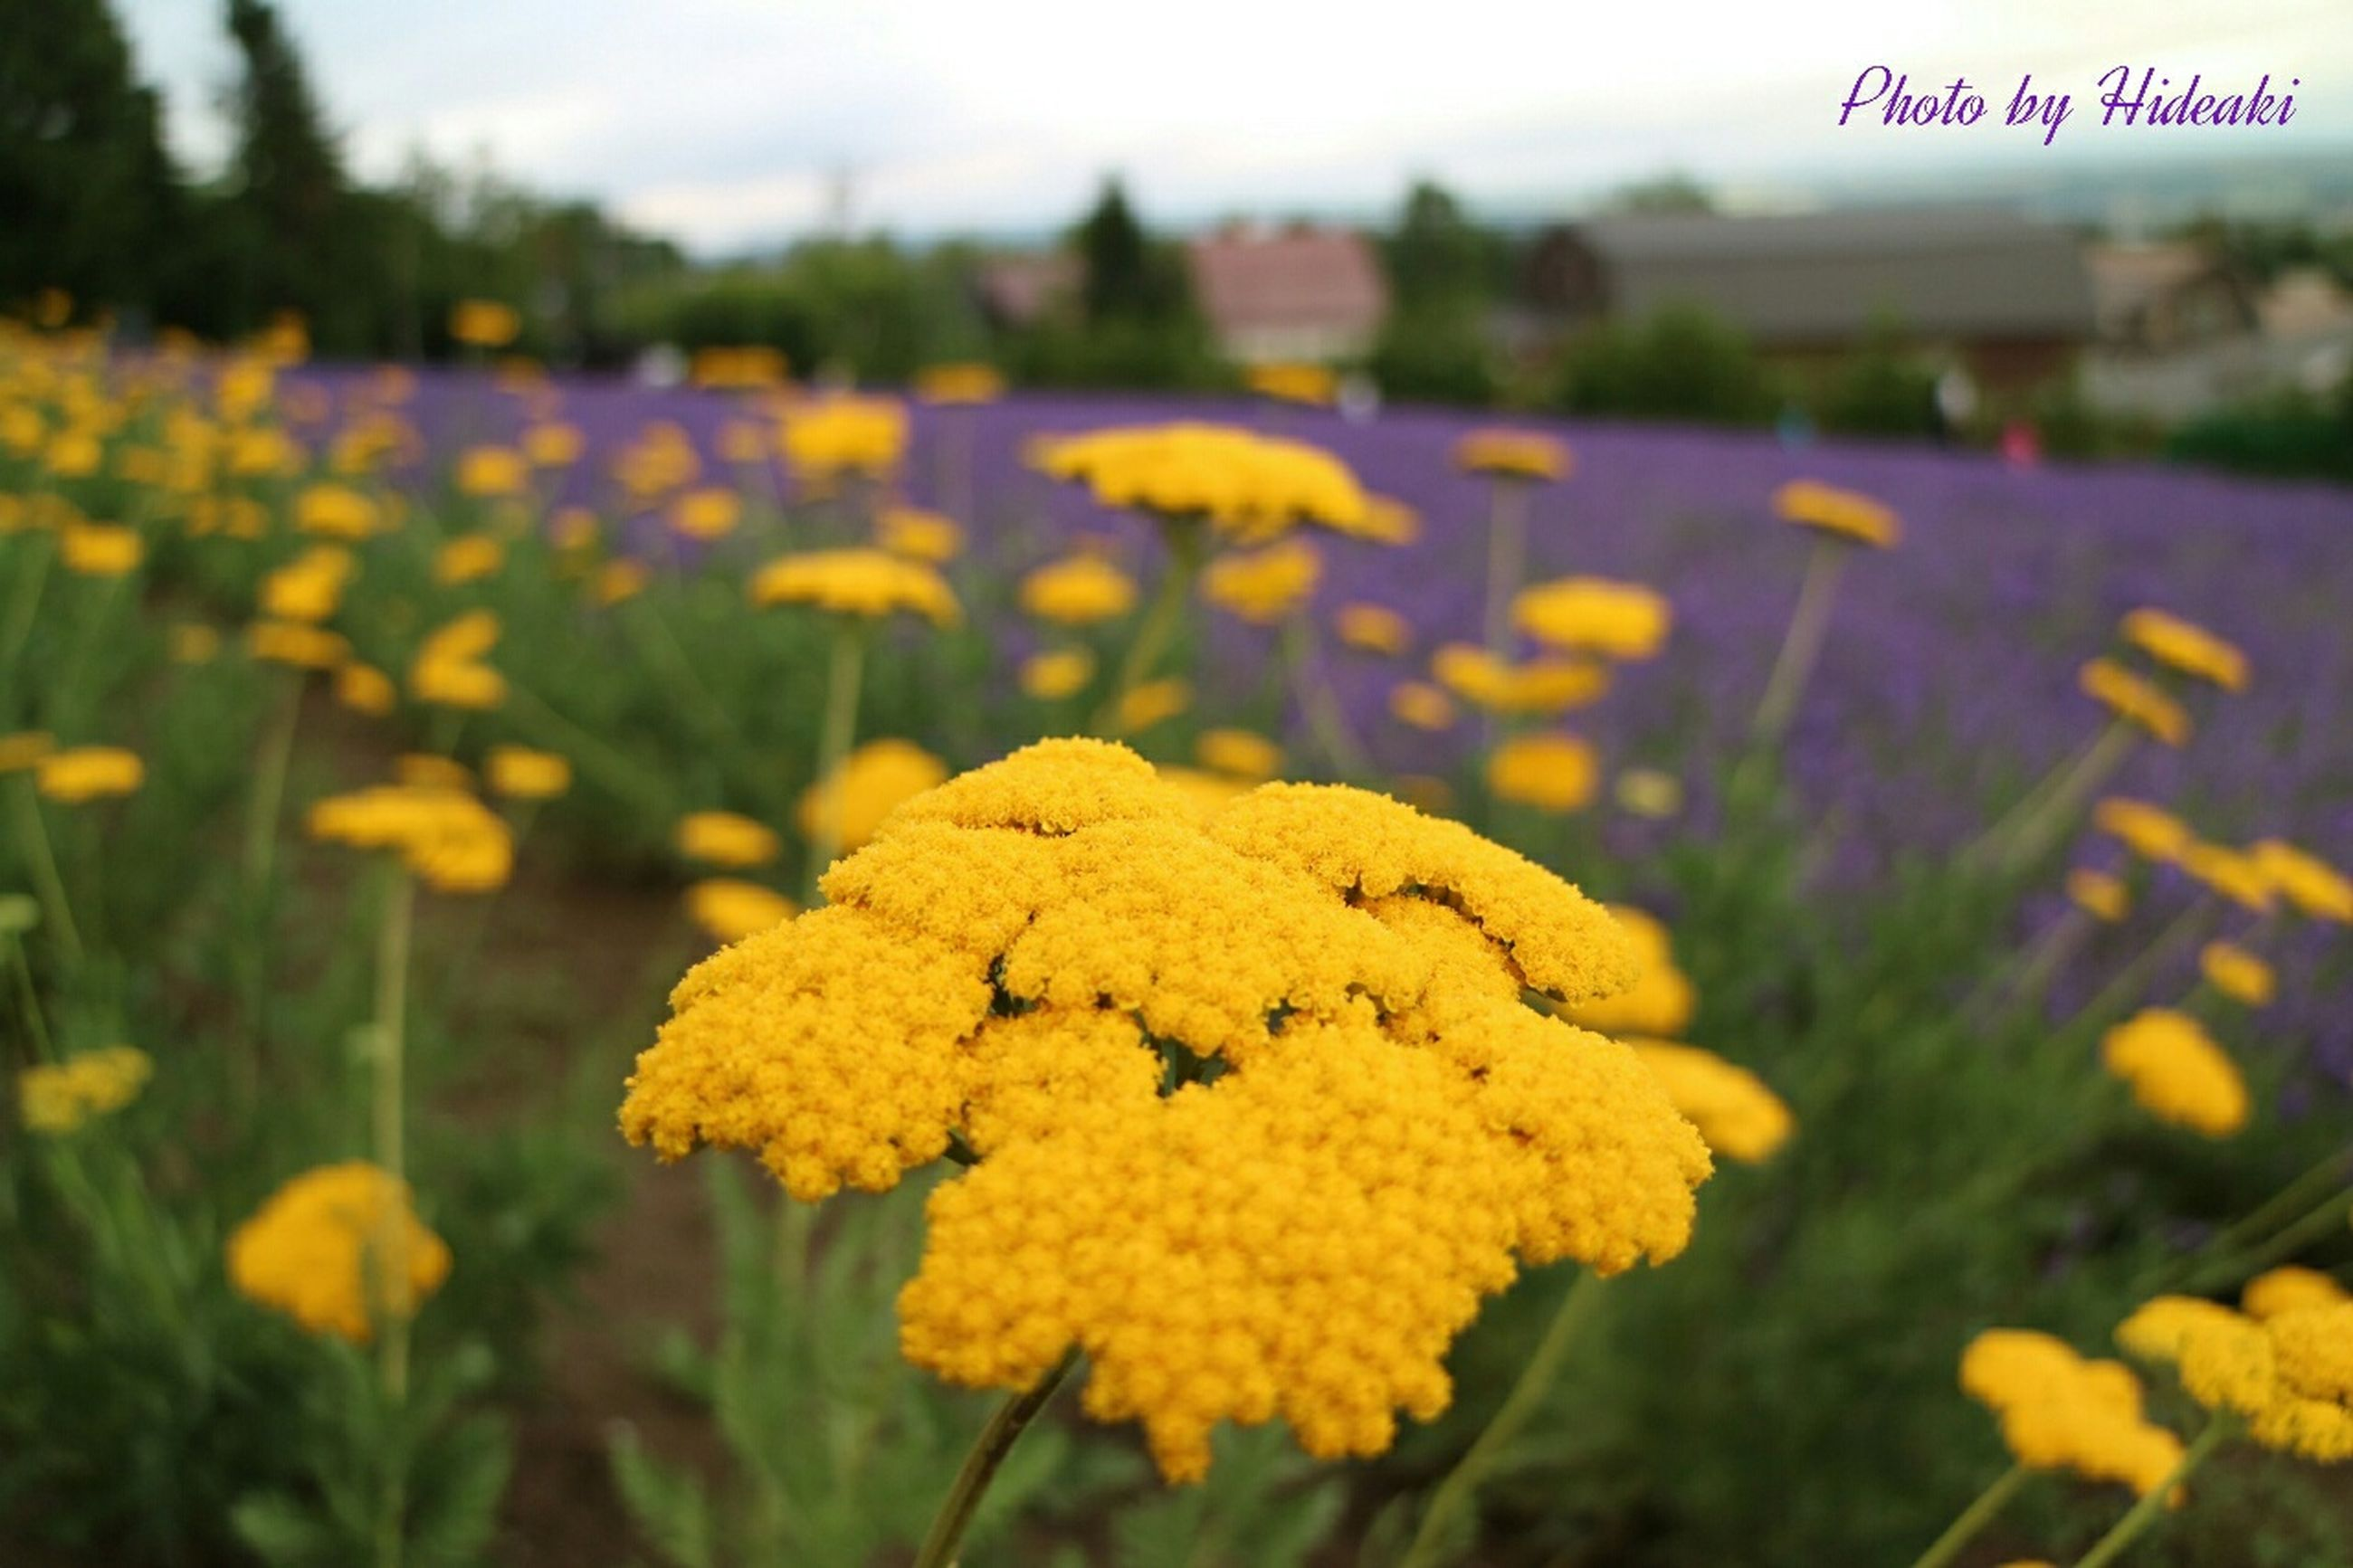 flower, yellow, freshness, fragility, focus on foreground, growth, beauty in nature, petal, nature, close-up, flower head, blooming, field, plant, selective focus, in bloom, day, outdoors, blossom, no people